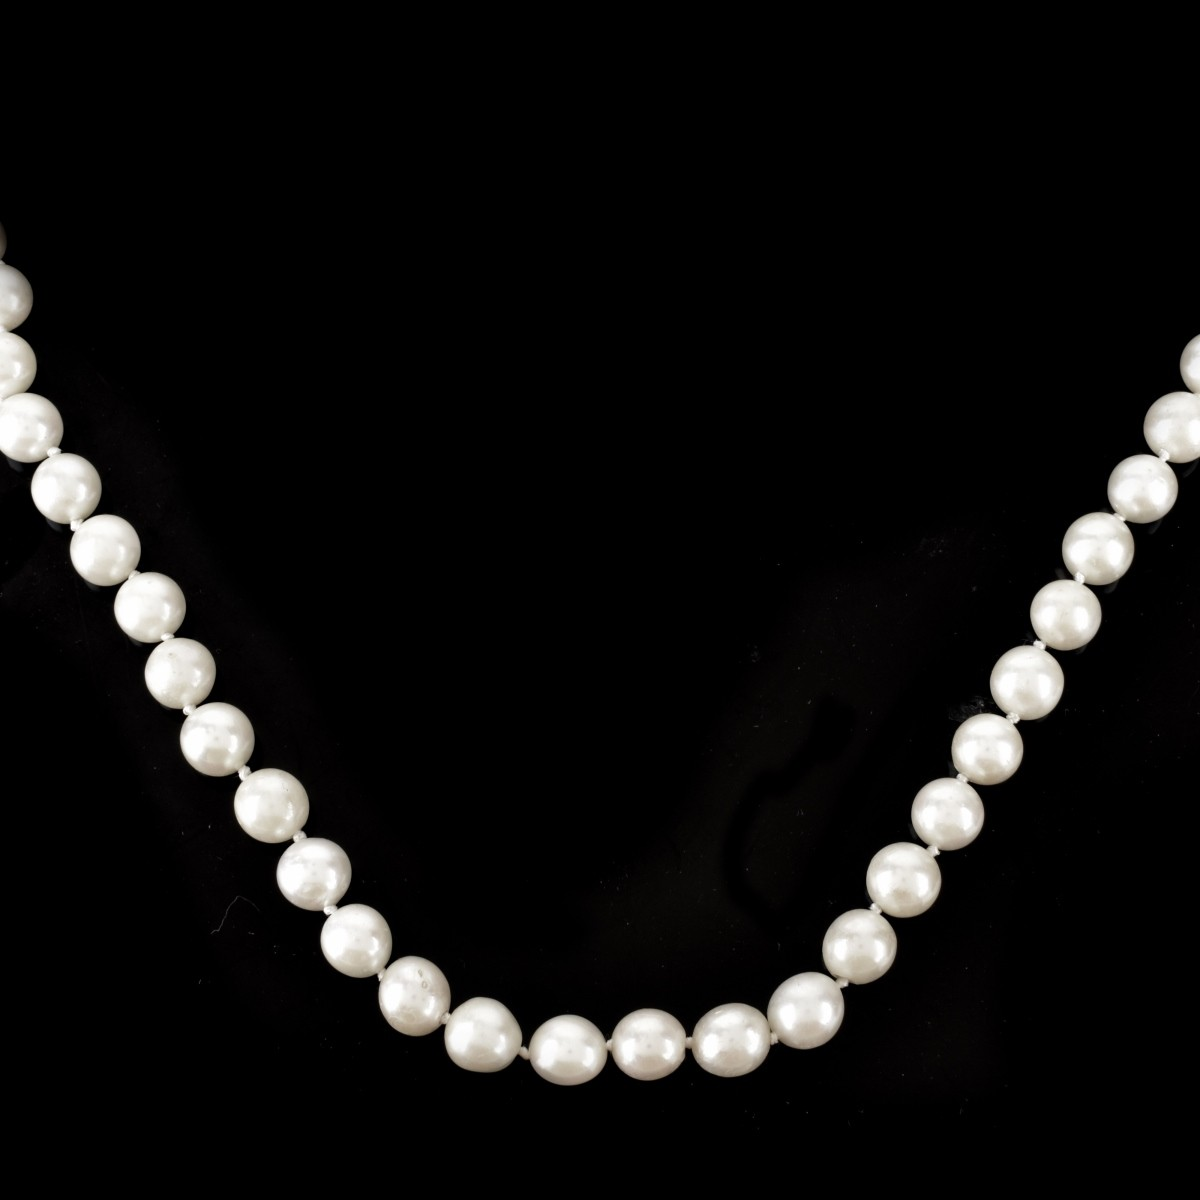 Two (2) Vintage 9.0mm Pearl Necklaces